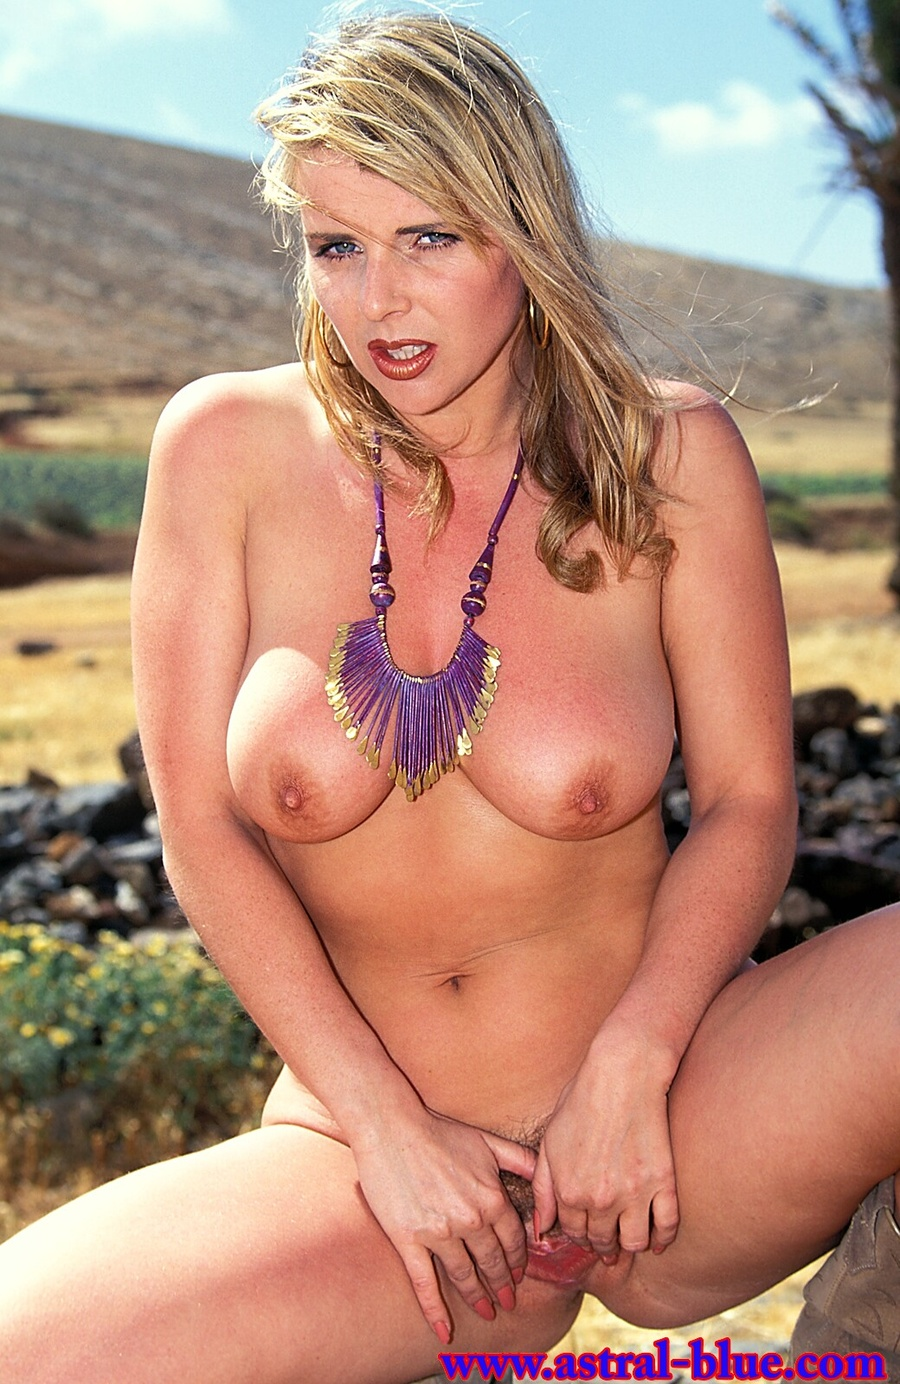 Racheal Farmer, Big Tits Uk Page 3 Girl, Nu - Xxx Dessert - Picture 15-8493